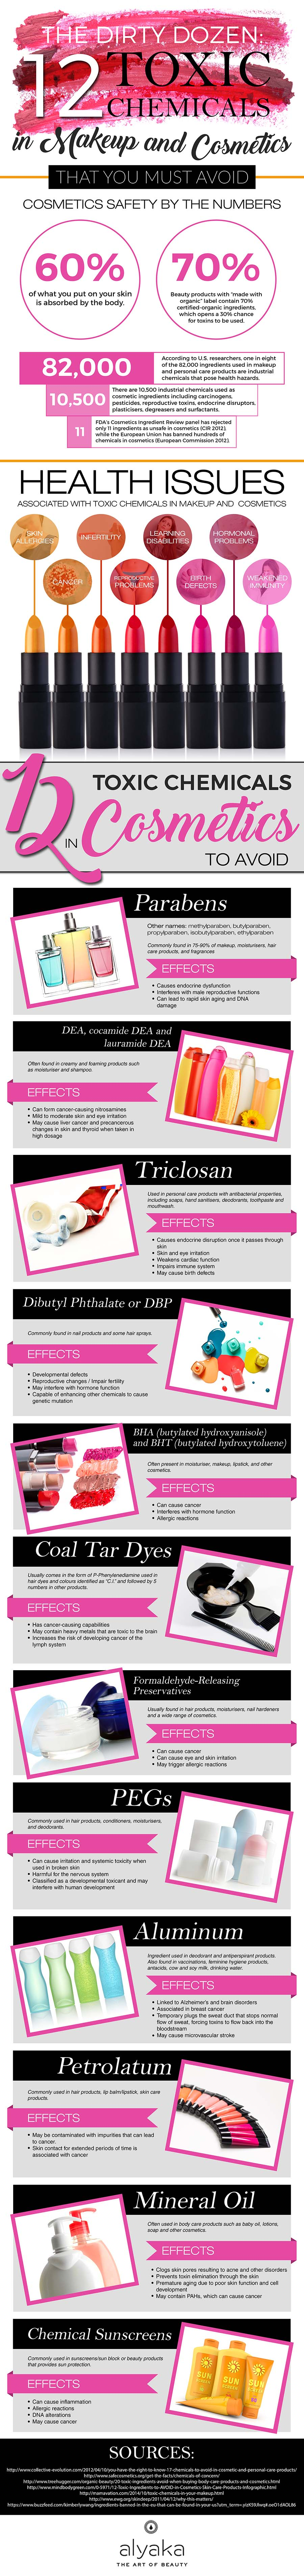 Toxic Chemicals in Cosmetics Infographic